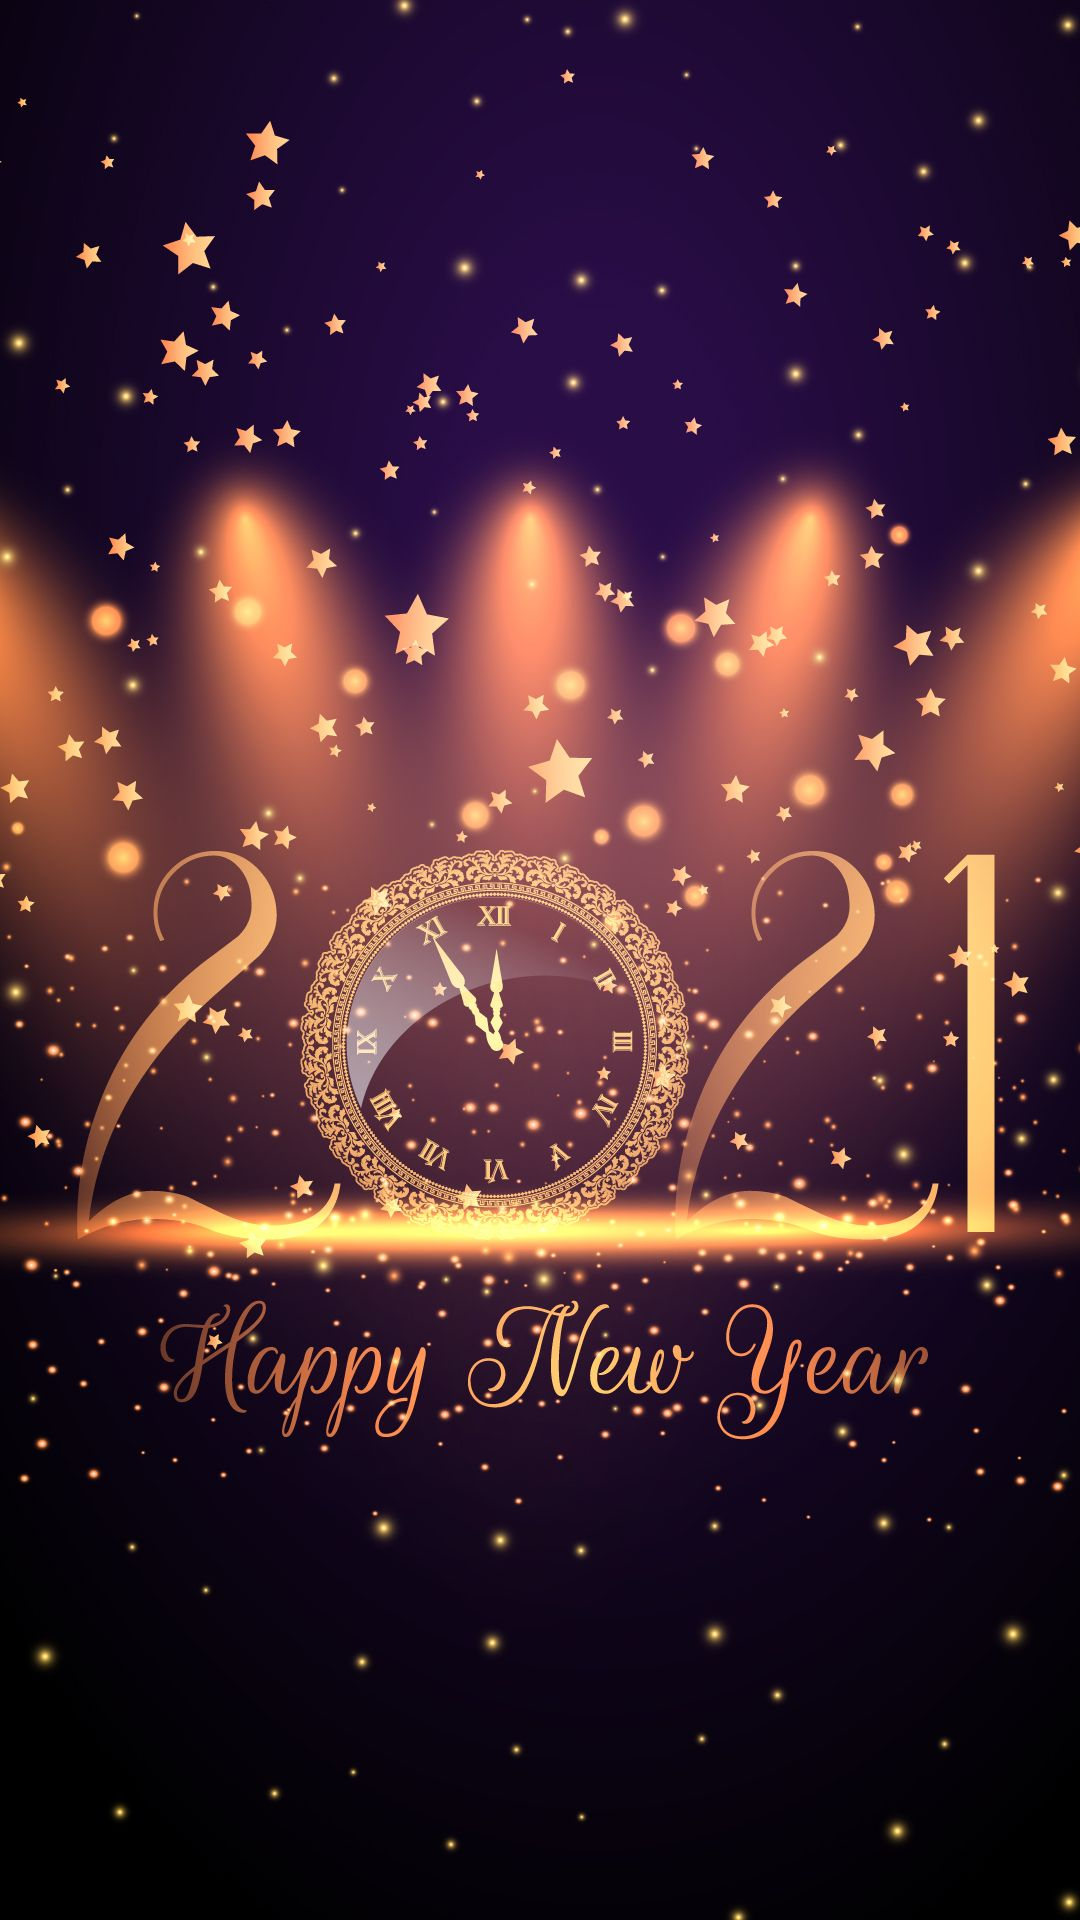 Happy New Year 2021 Full Screen Wallpapers Wallpaper Cave